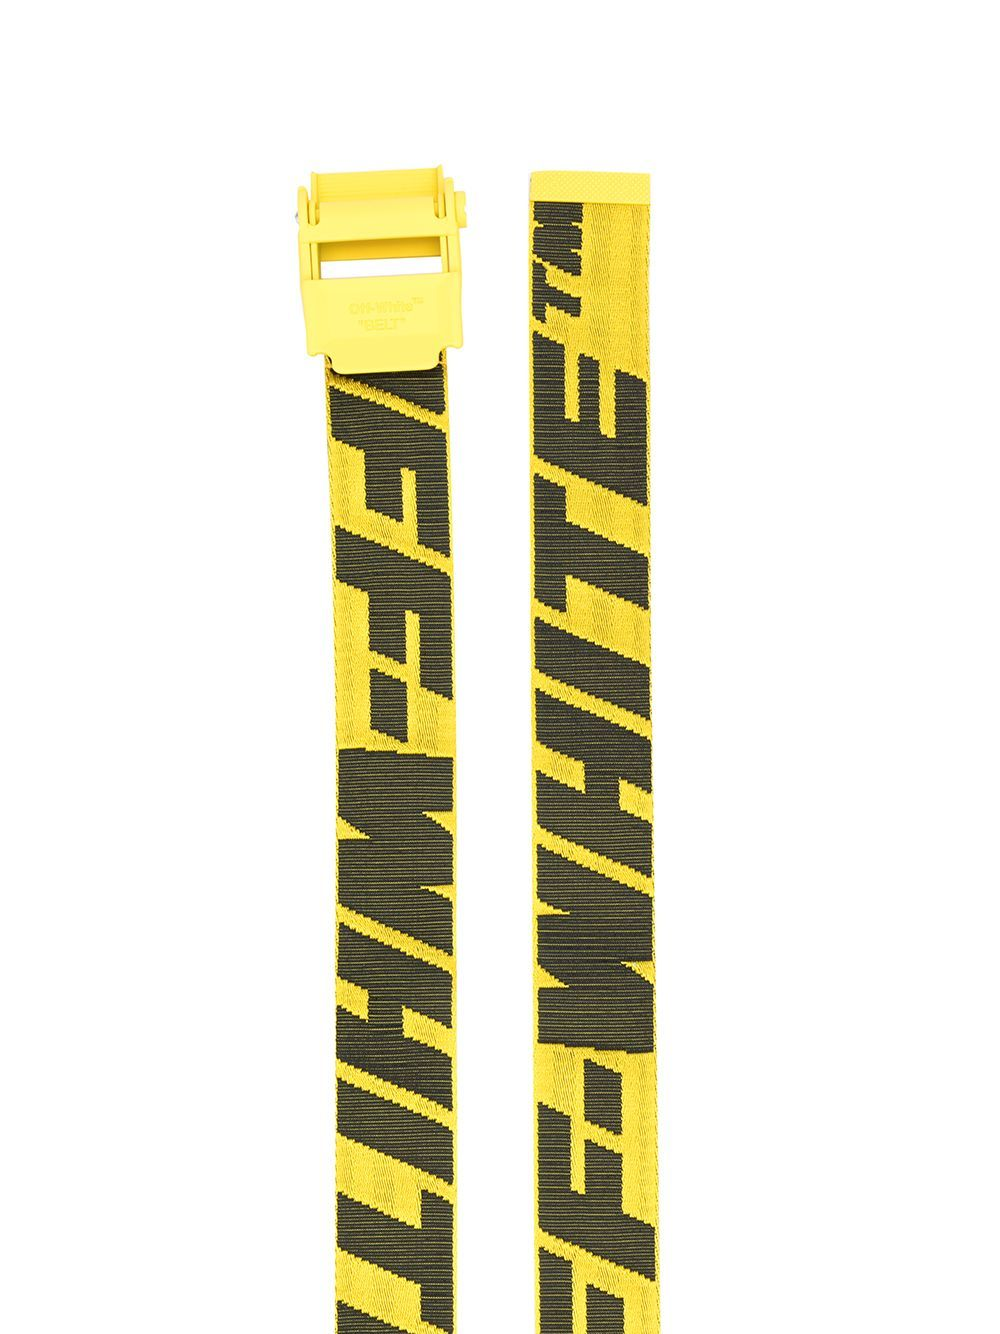 OFF-WHITE 2.0 industrial belt yellow/black - Maison De Fashion